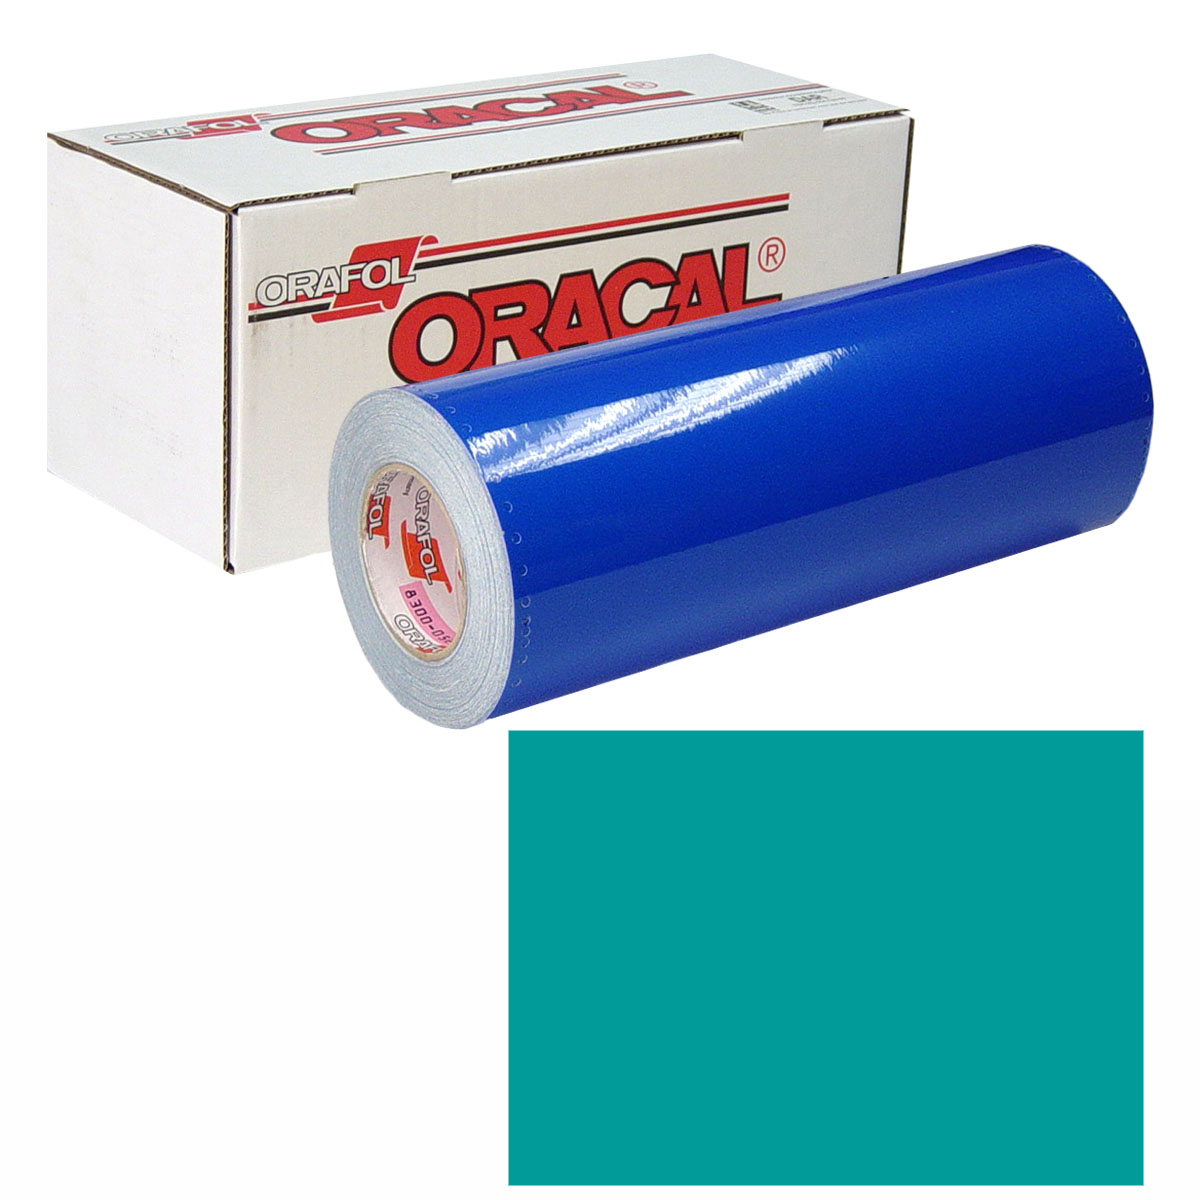 ORACAL 631 Unp 48In X 10Yd 054 Turquoise